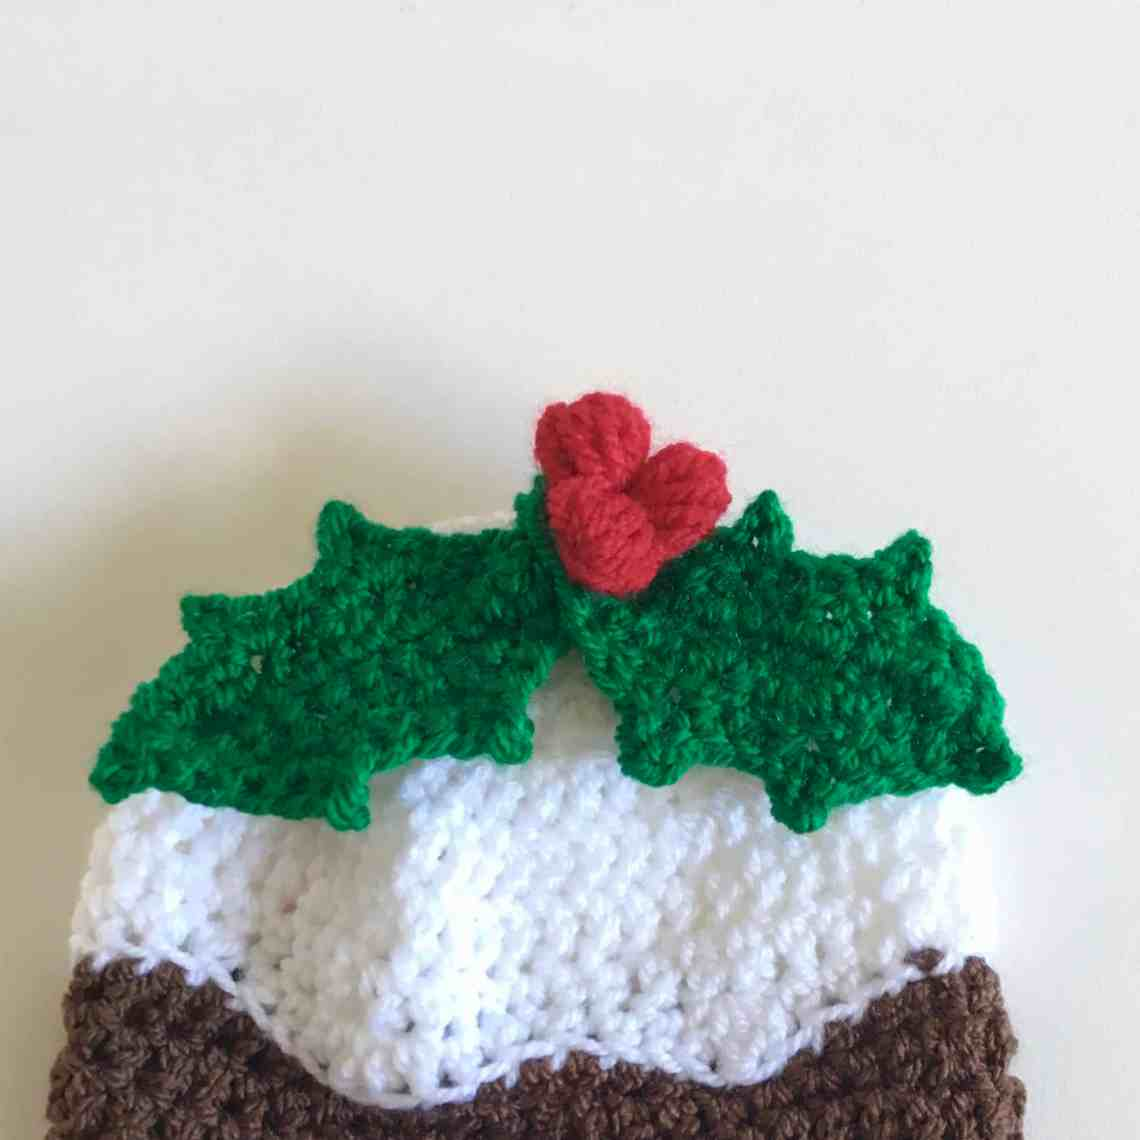 Christmas pudding crochet hat with holly sprig and berries